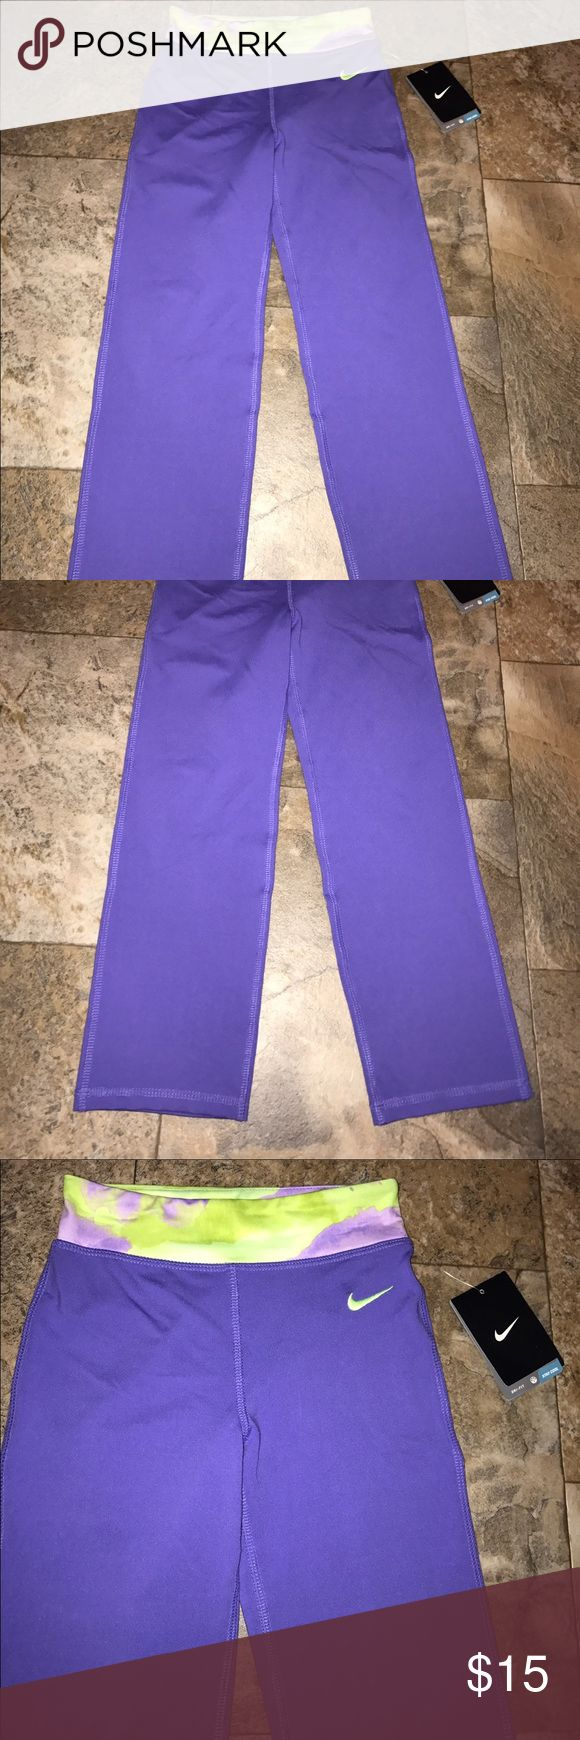 Nike yoga pants girls size 6 NWT Girls Nike yoga pants size 6 dry fit new with tags    10% off on ANY two items purchased AND shipped together.  15% off ANY three items purchased AND shipped together! Nike Bottoms Leggings